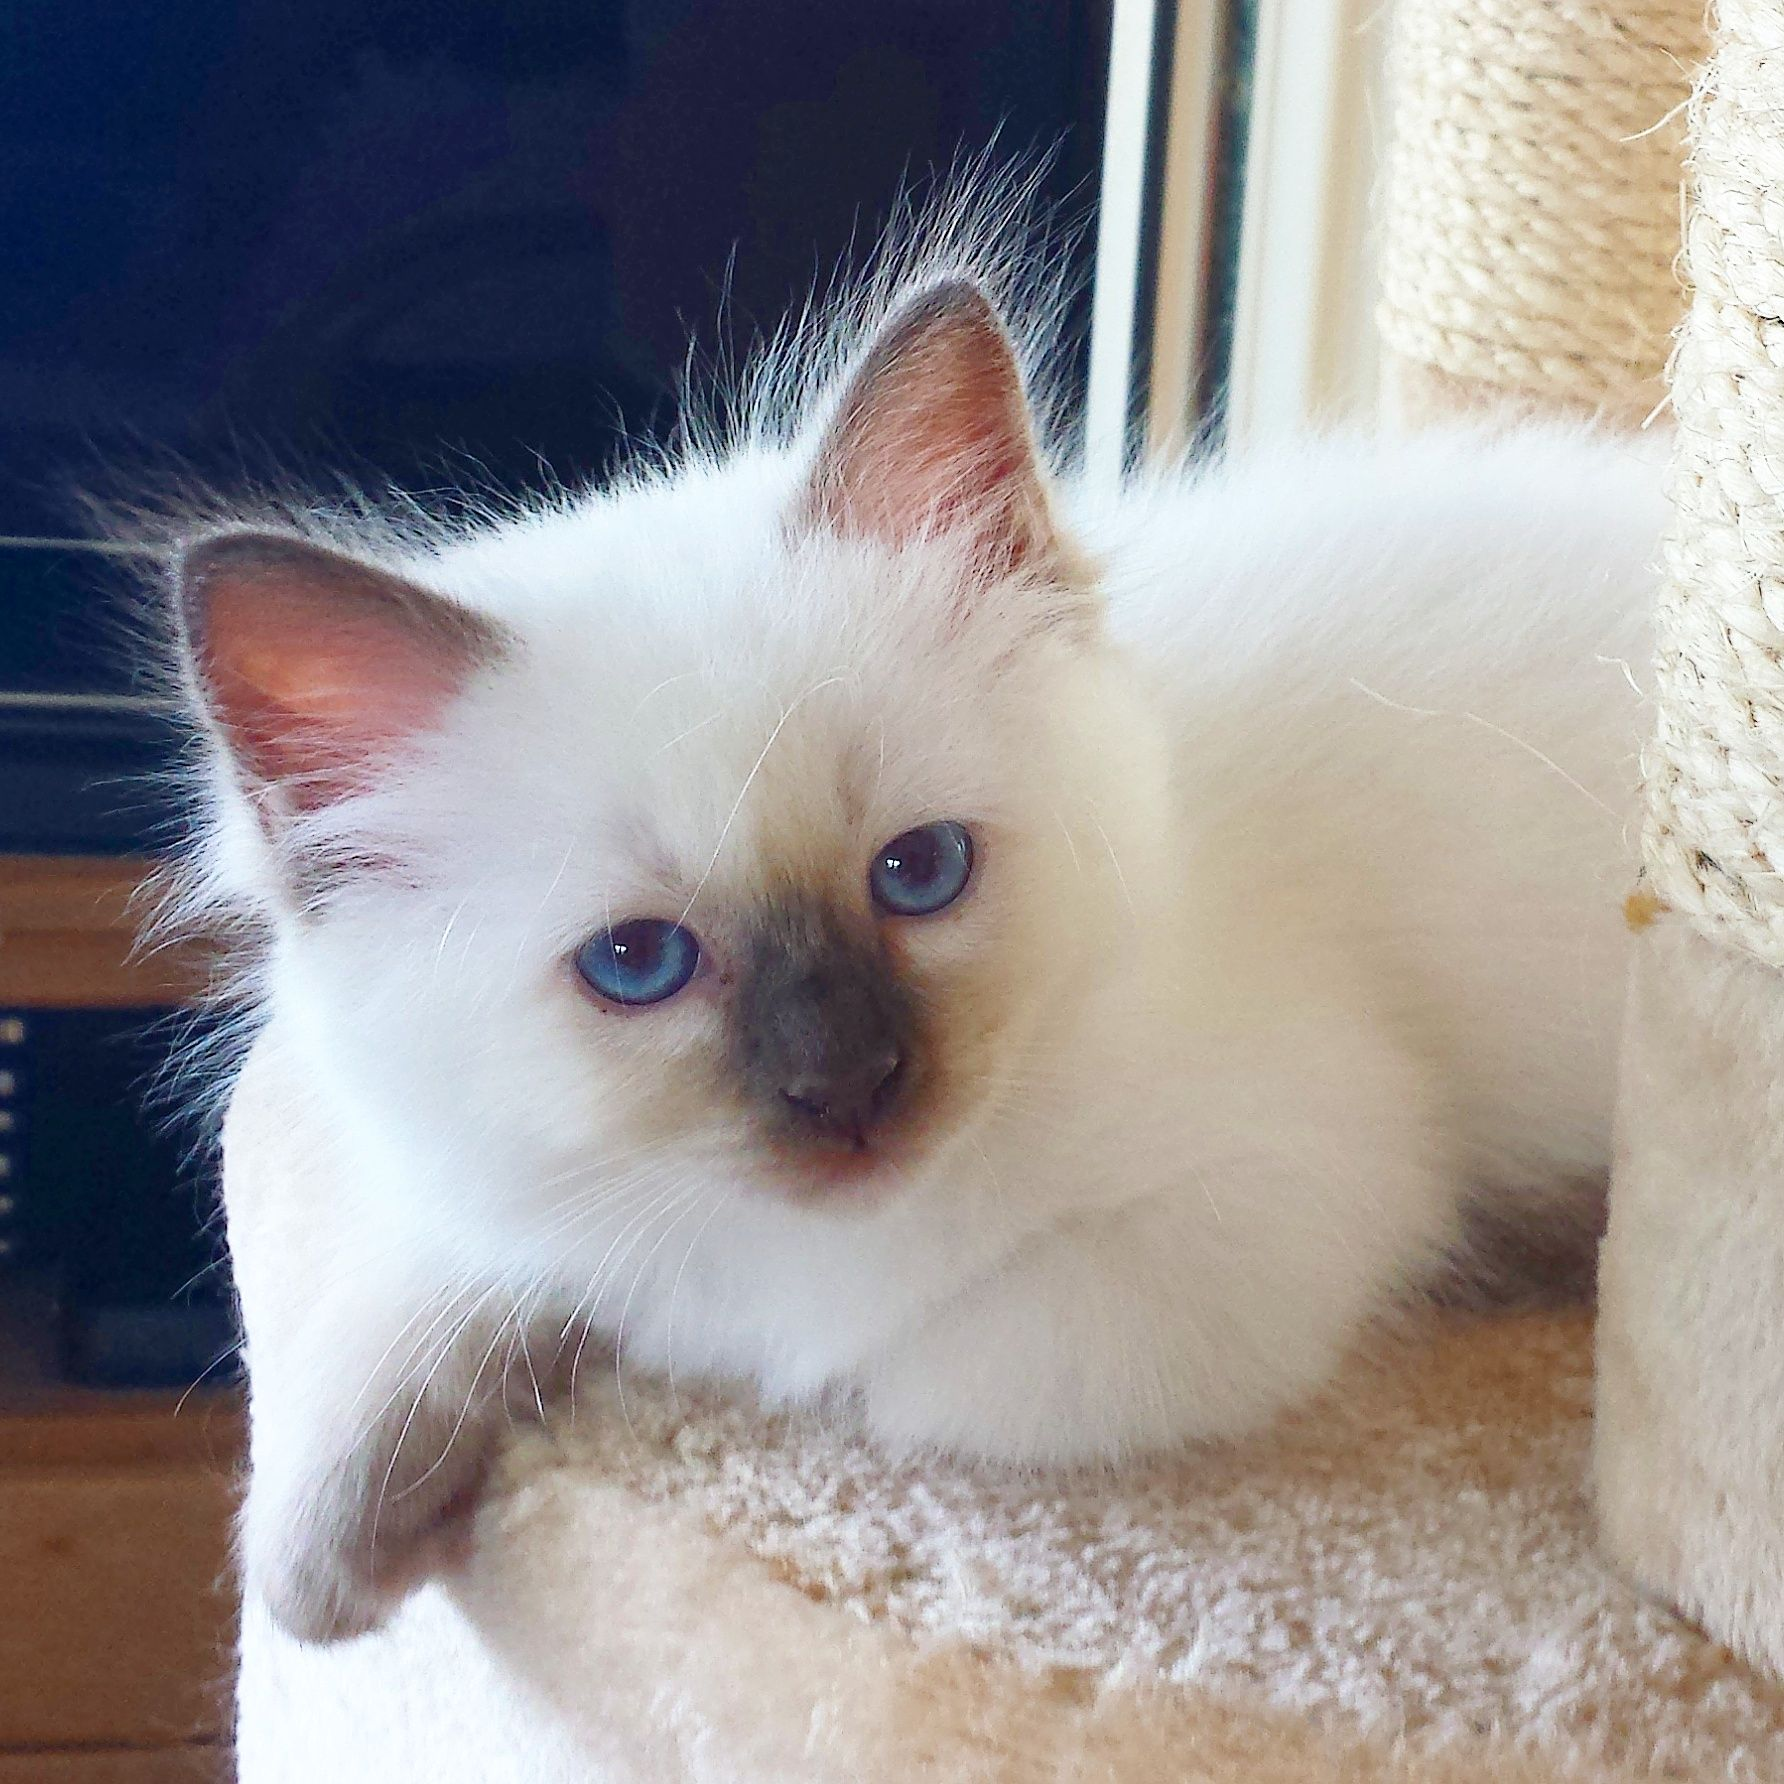 My Kitten Kaipo 3 The Little Boy Is 9 Weeks Old On This Photo Chocolate Point Ragdoll Ragdoll Kitten Siamese Kittens Cats And Kittens